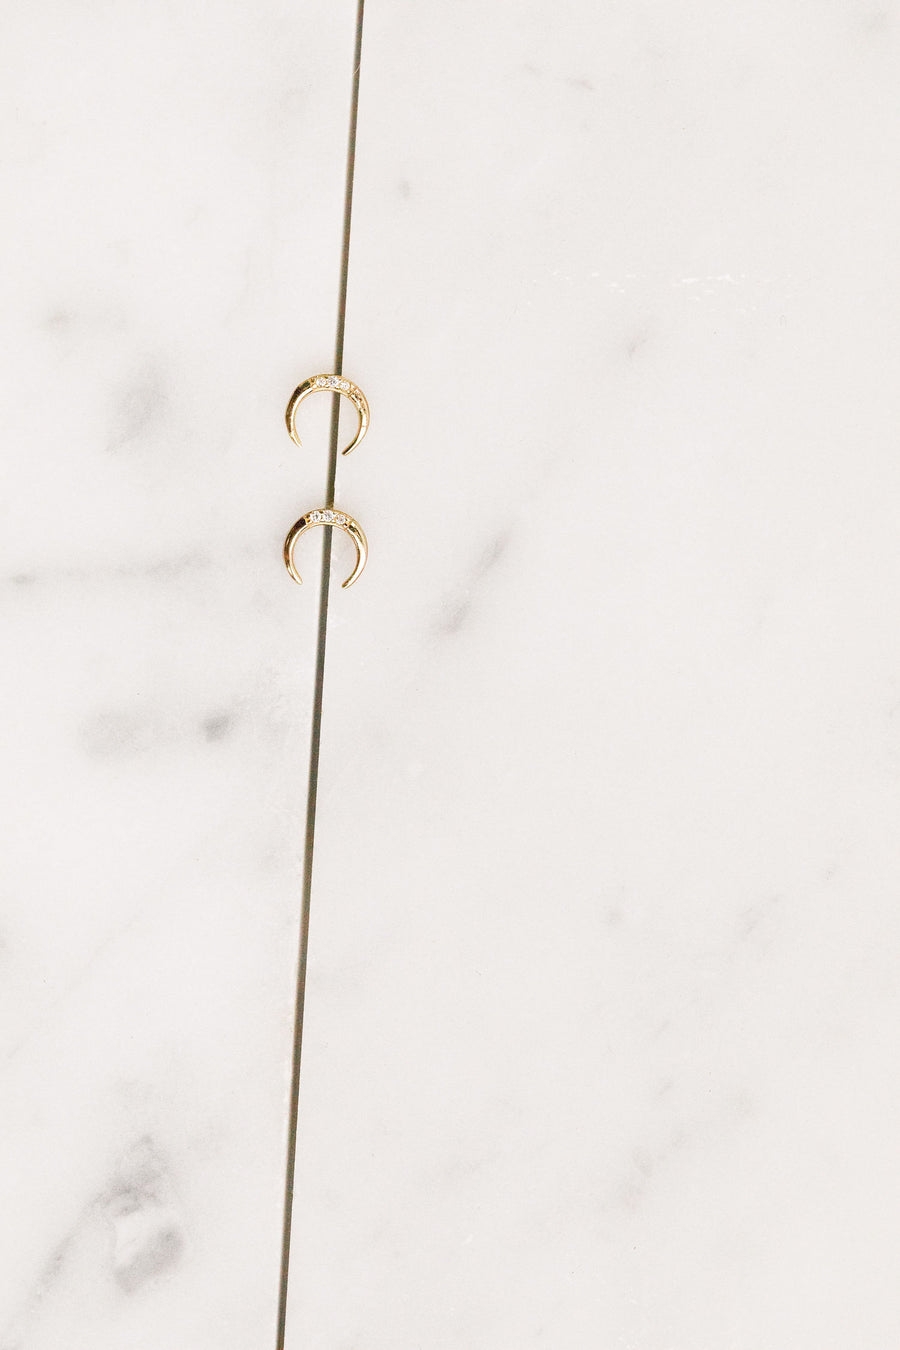 Find the perfect pair of earrings you're looking for from Charme Silkiner! These crescent stud earrings with CZ accents are seriously stunning. Perfect to dress or dress down any outfit the Tiny Taiga Earrings are the perfect must have for everyone!